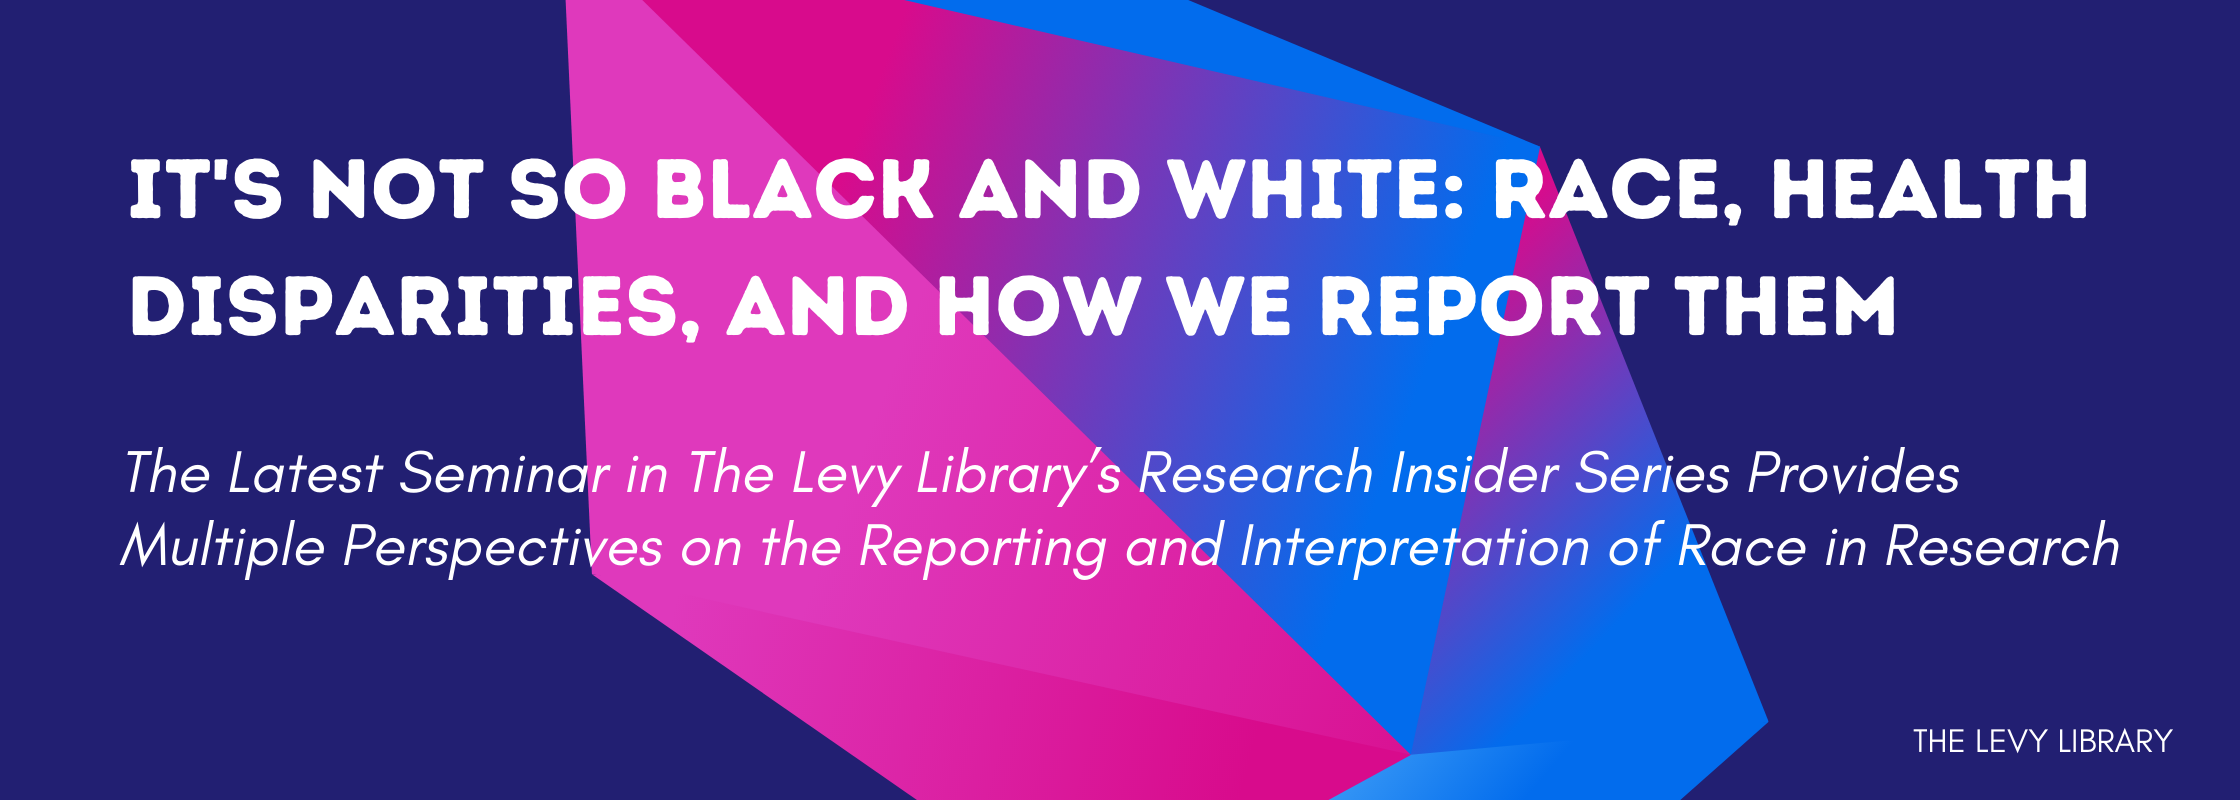 Levy Library Research Insider